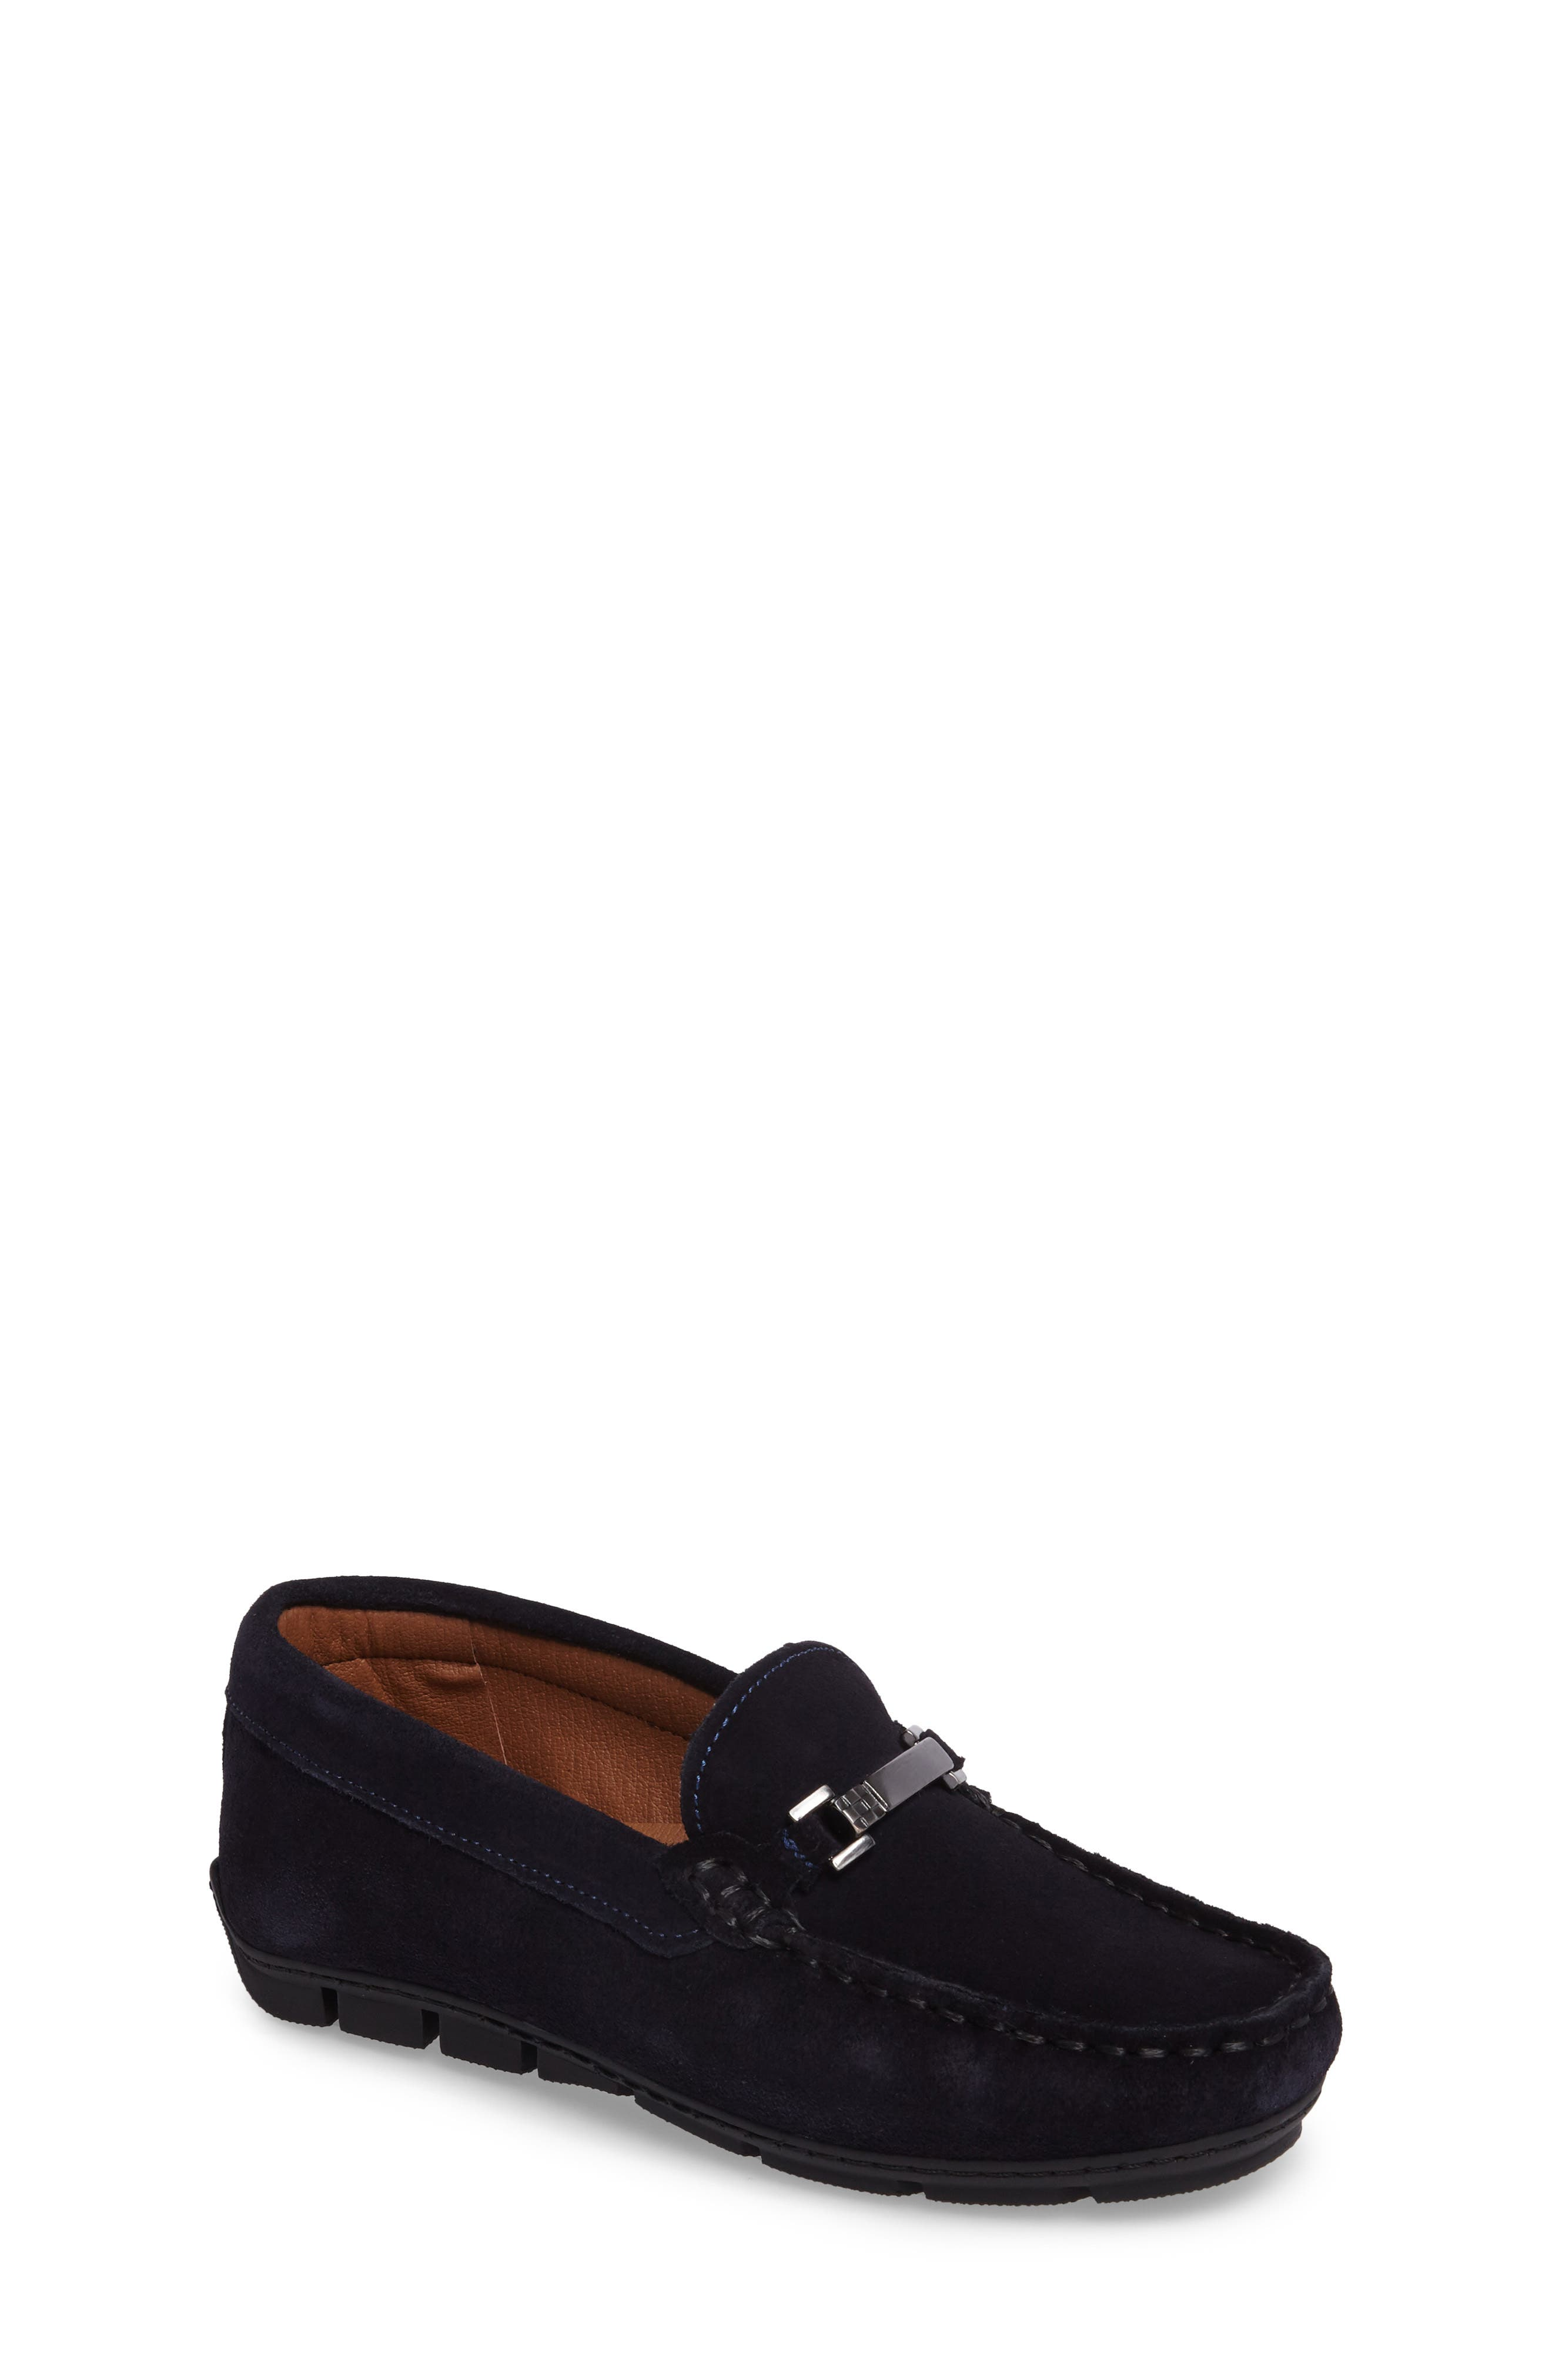 Dante Loafer,                             Main thumbnail 1, color,                             Dark Navy Suede